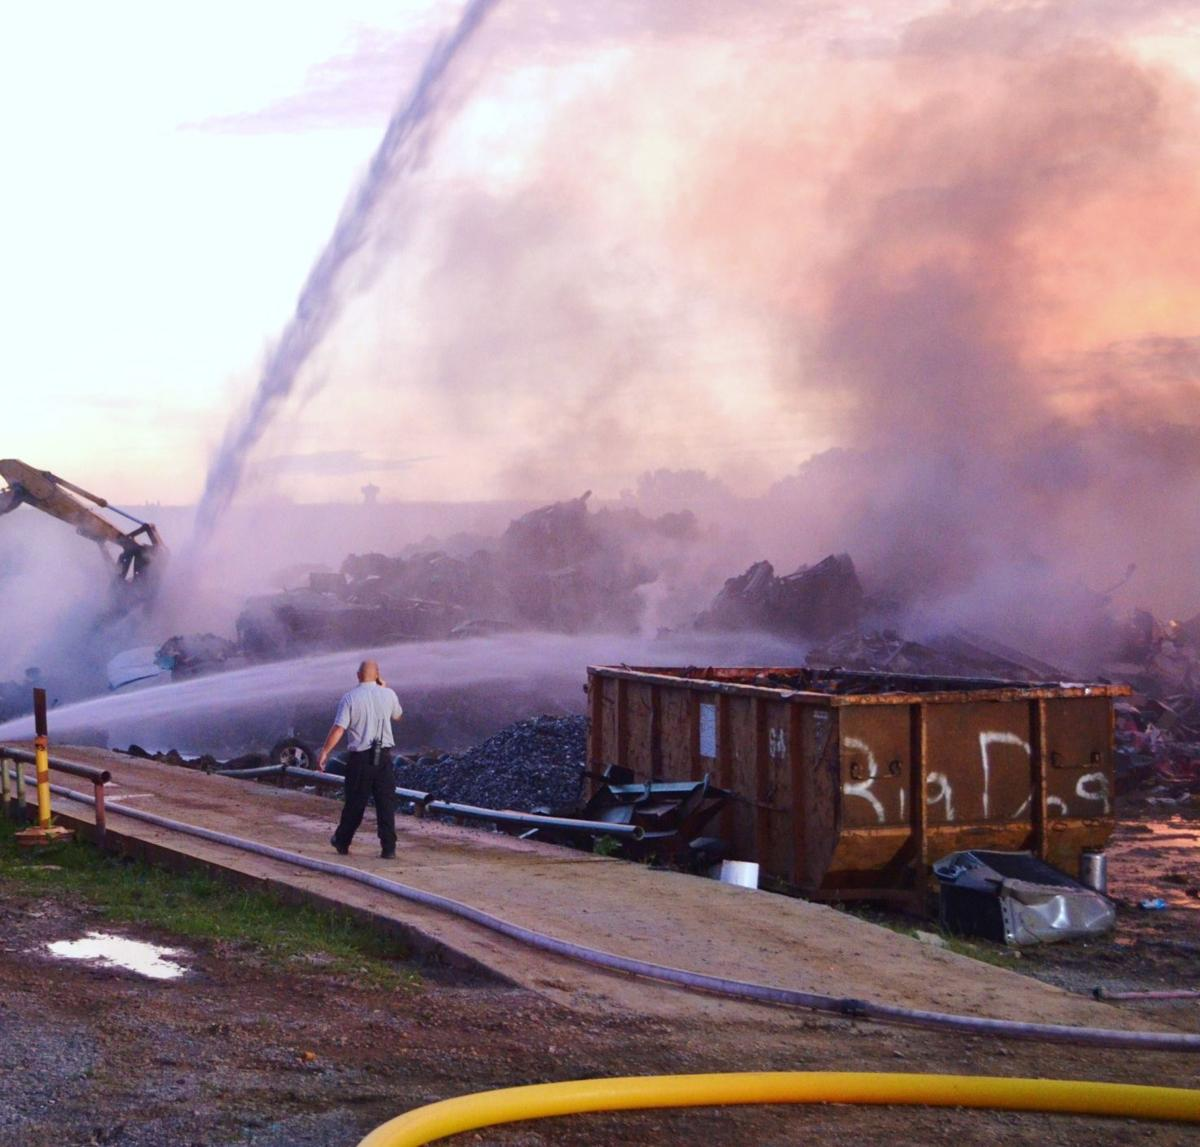 West Main Recycling Fire #11